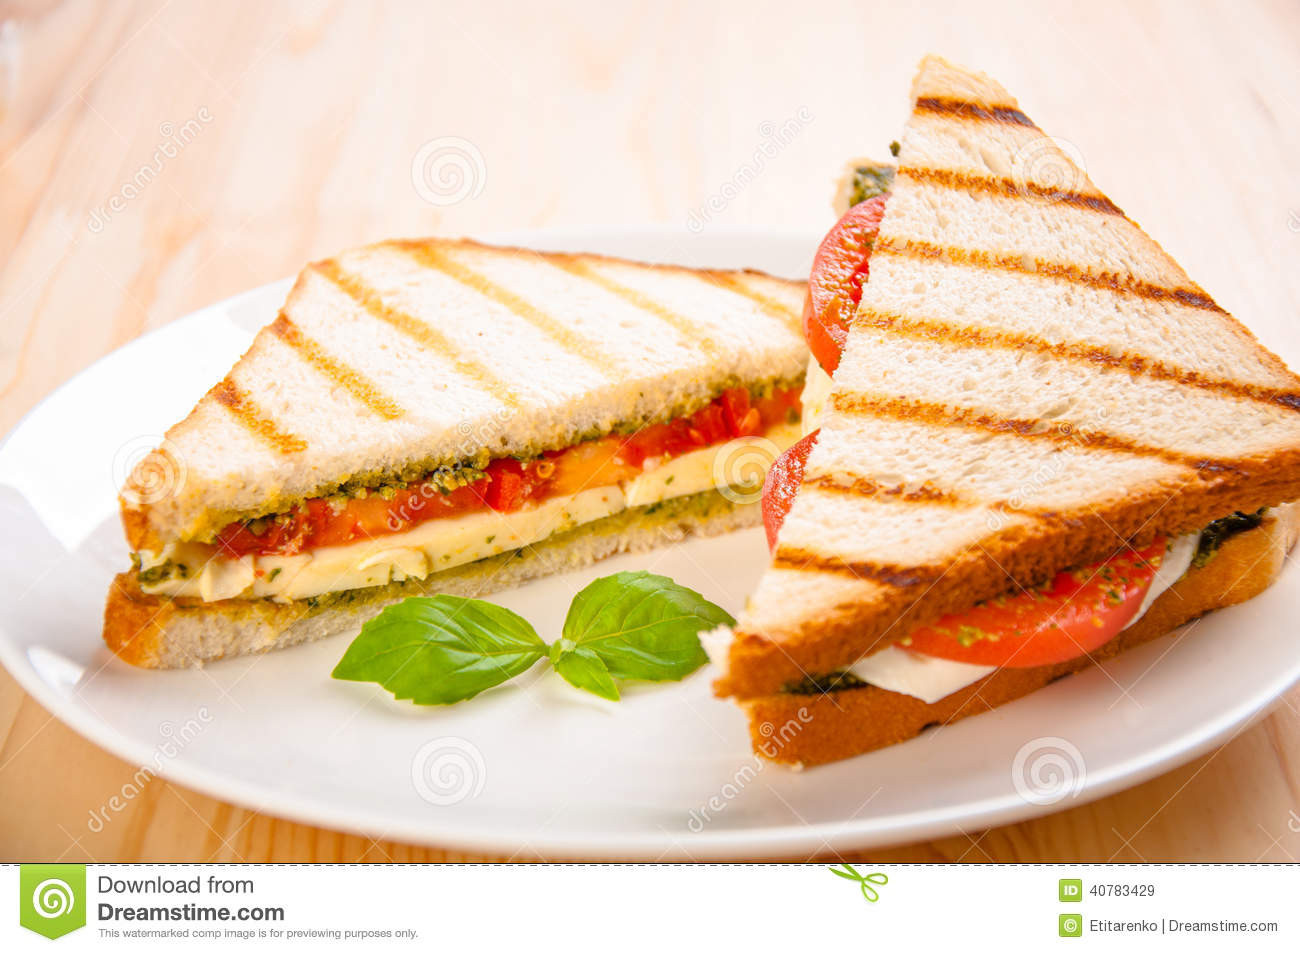 Healthy Fast Food Snacks  Bread Sandwich With Cheese Tomato Healthy Ve arian